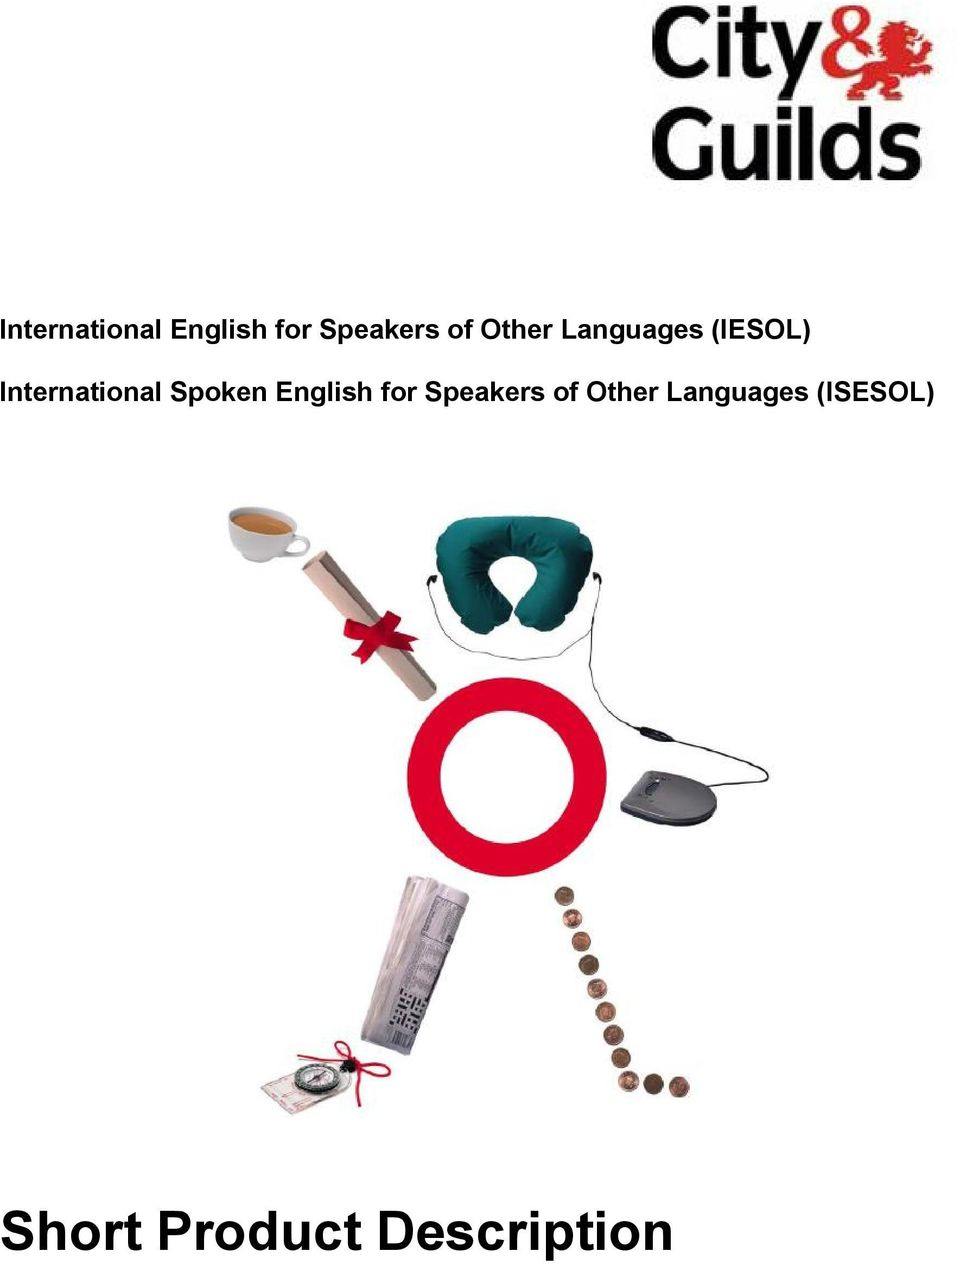 Spoken English for Speakers of Other